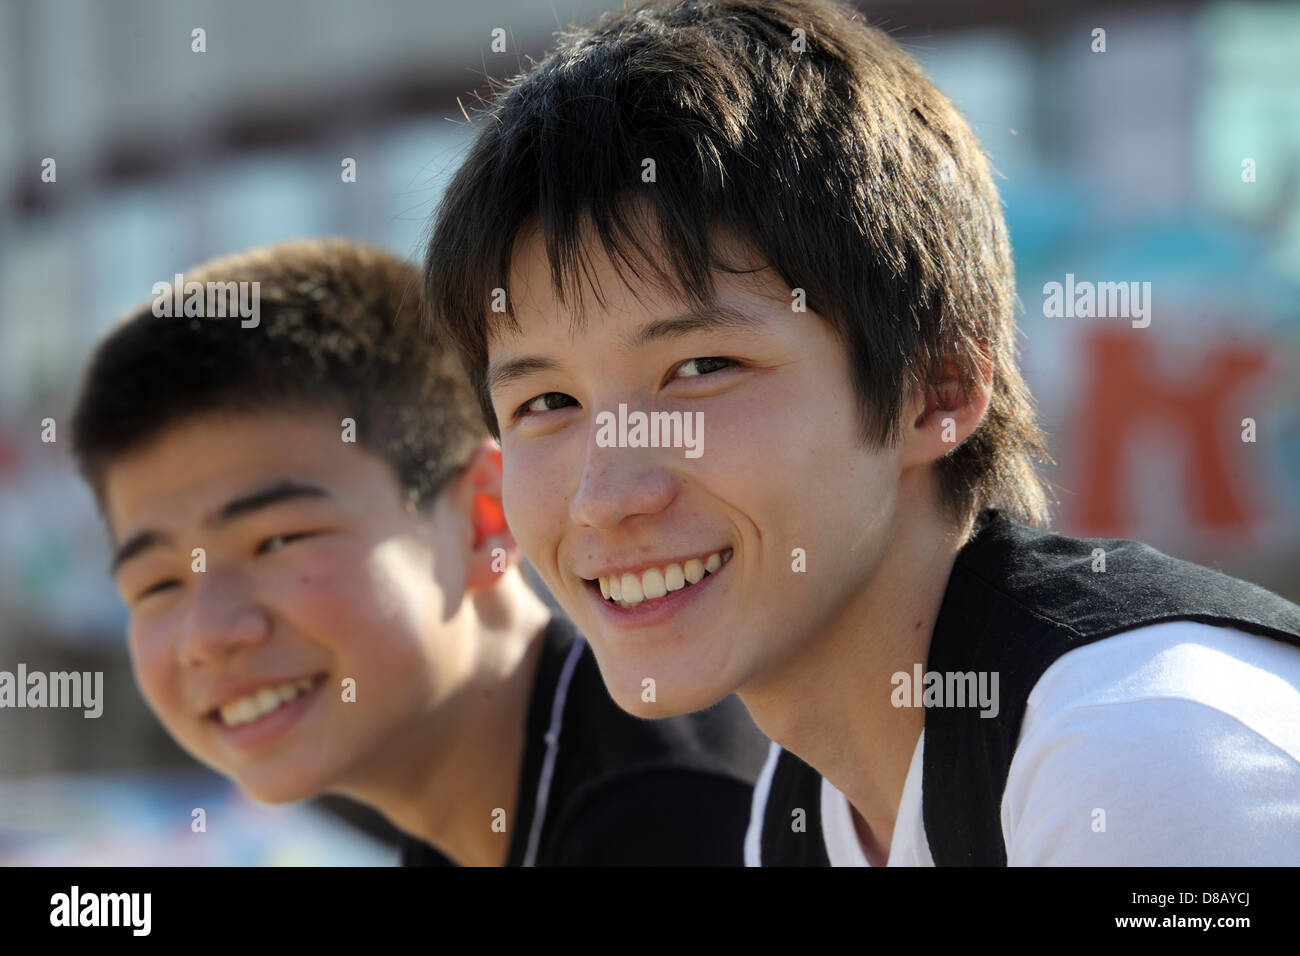 Kazakh boys teen-ager with smile on the faces - Stock Image